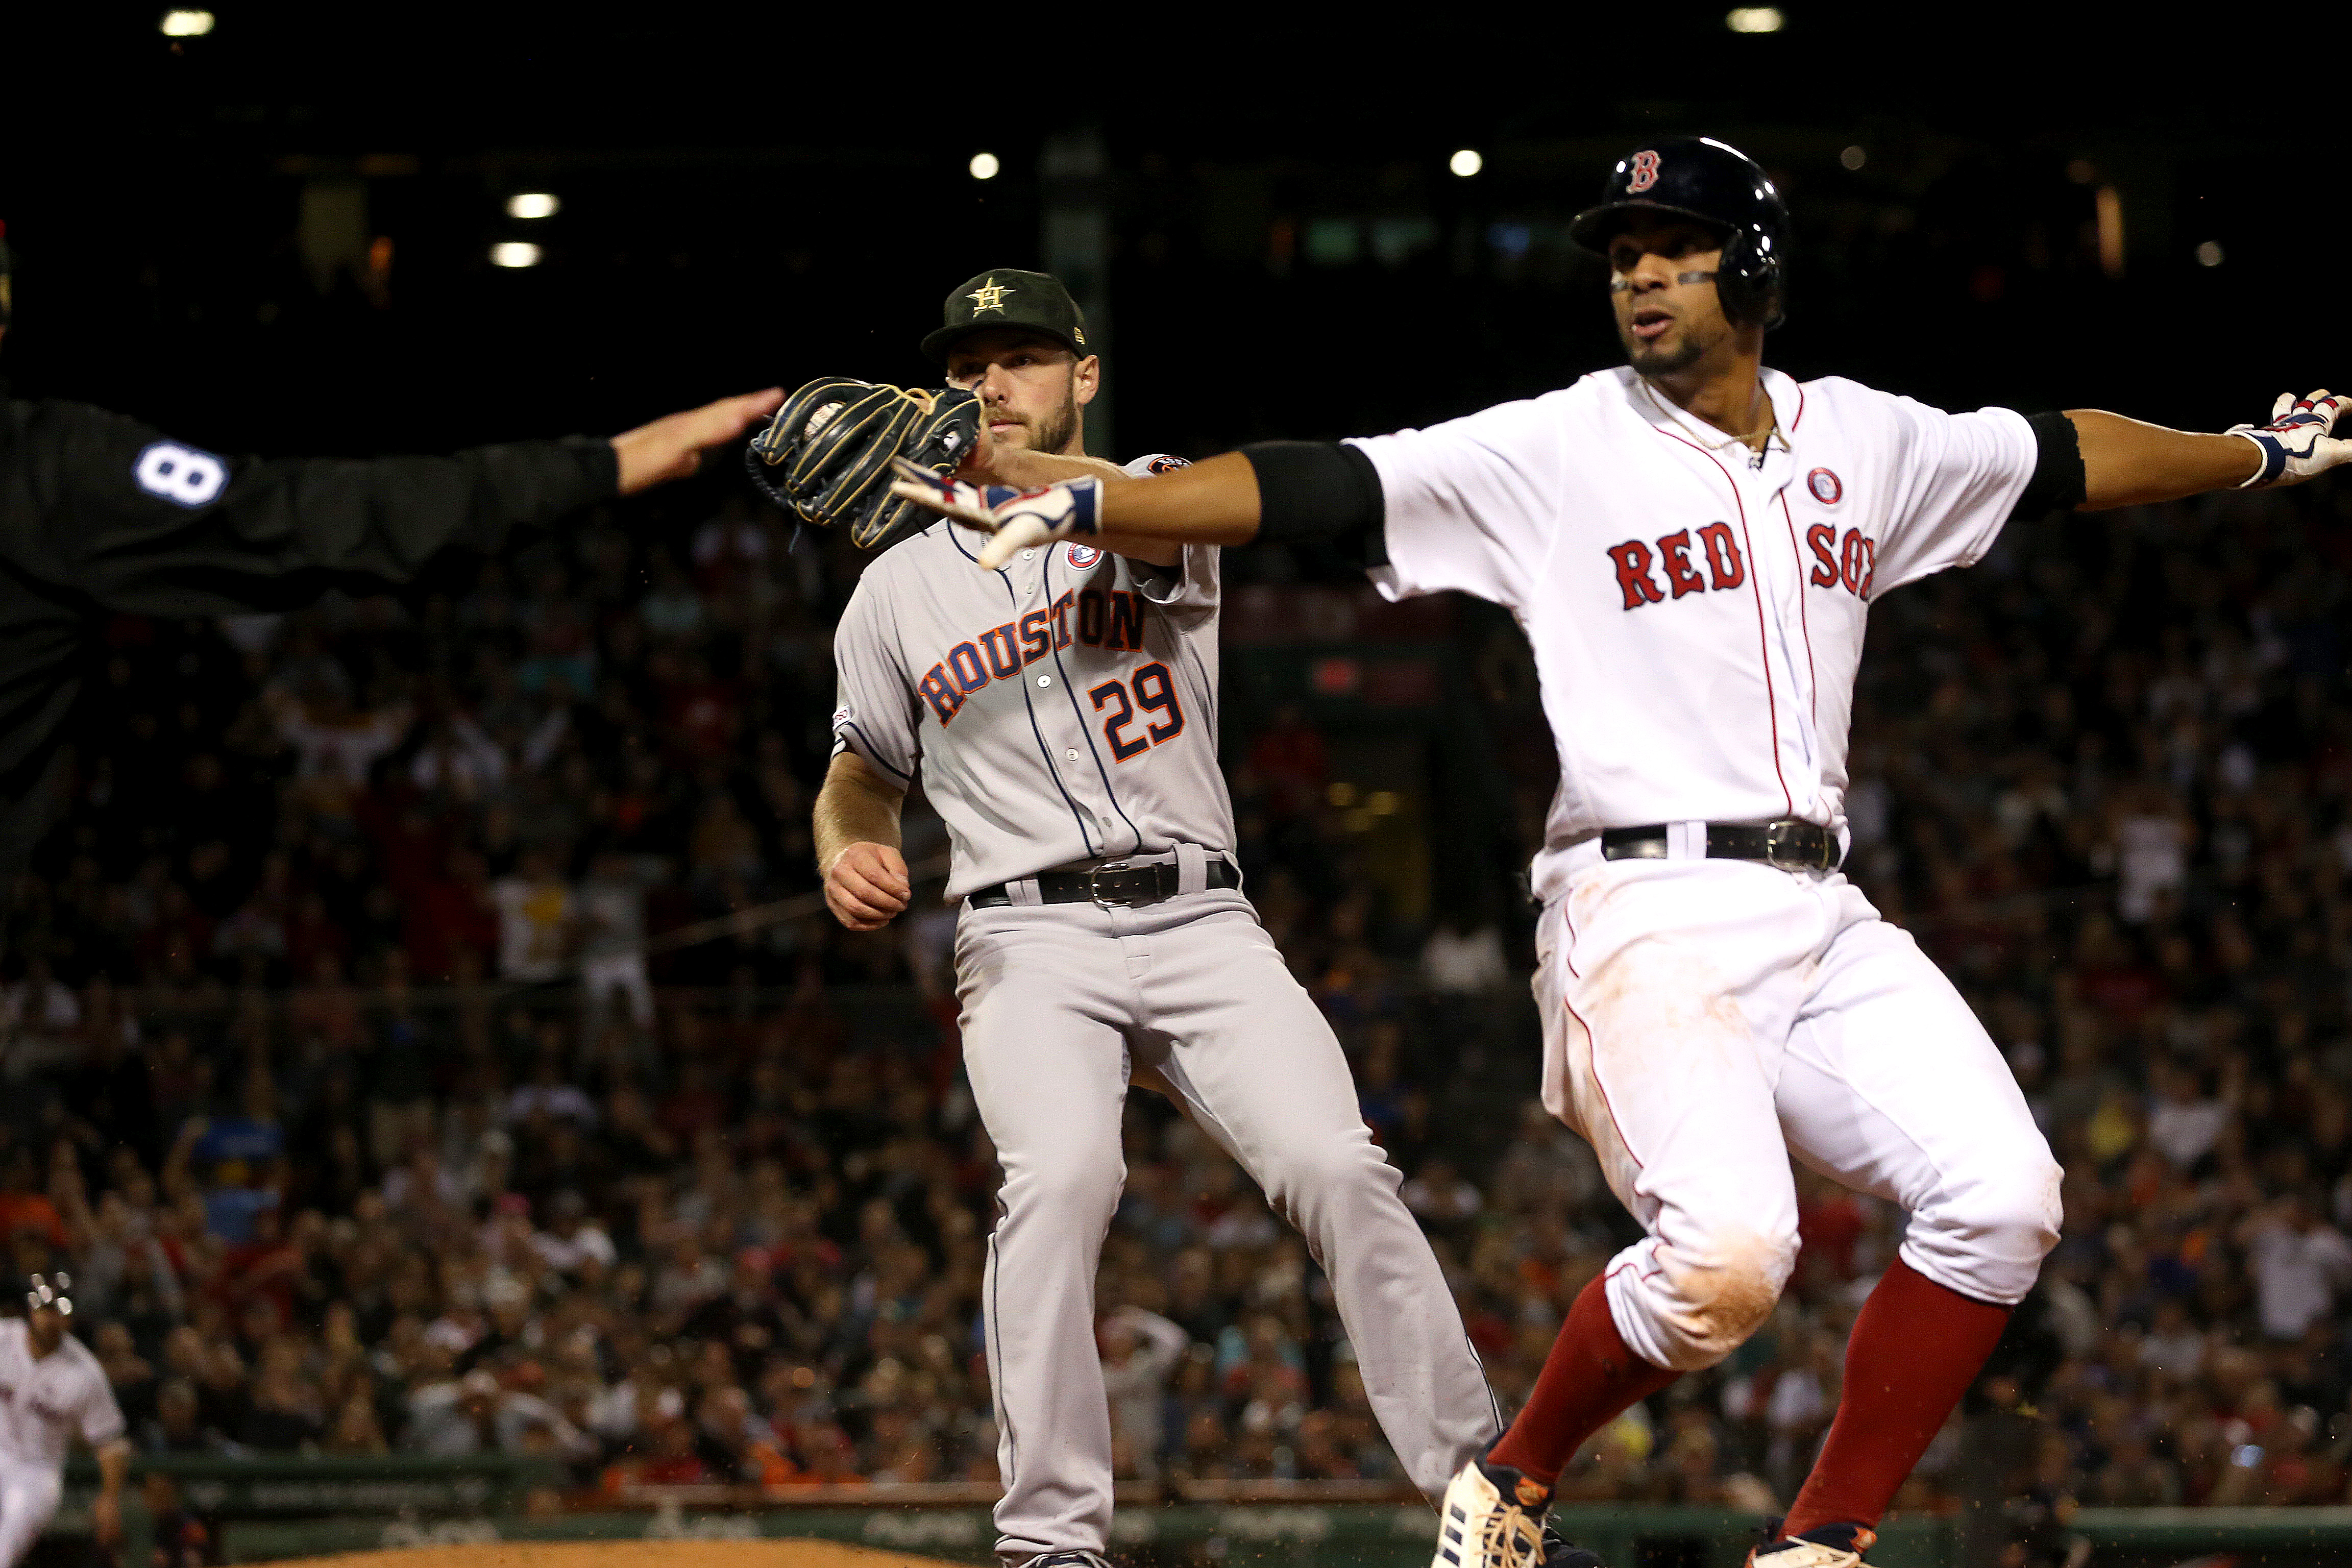 Five-run first by torrid Houston too much to overcome - The Boston Globe